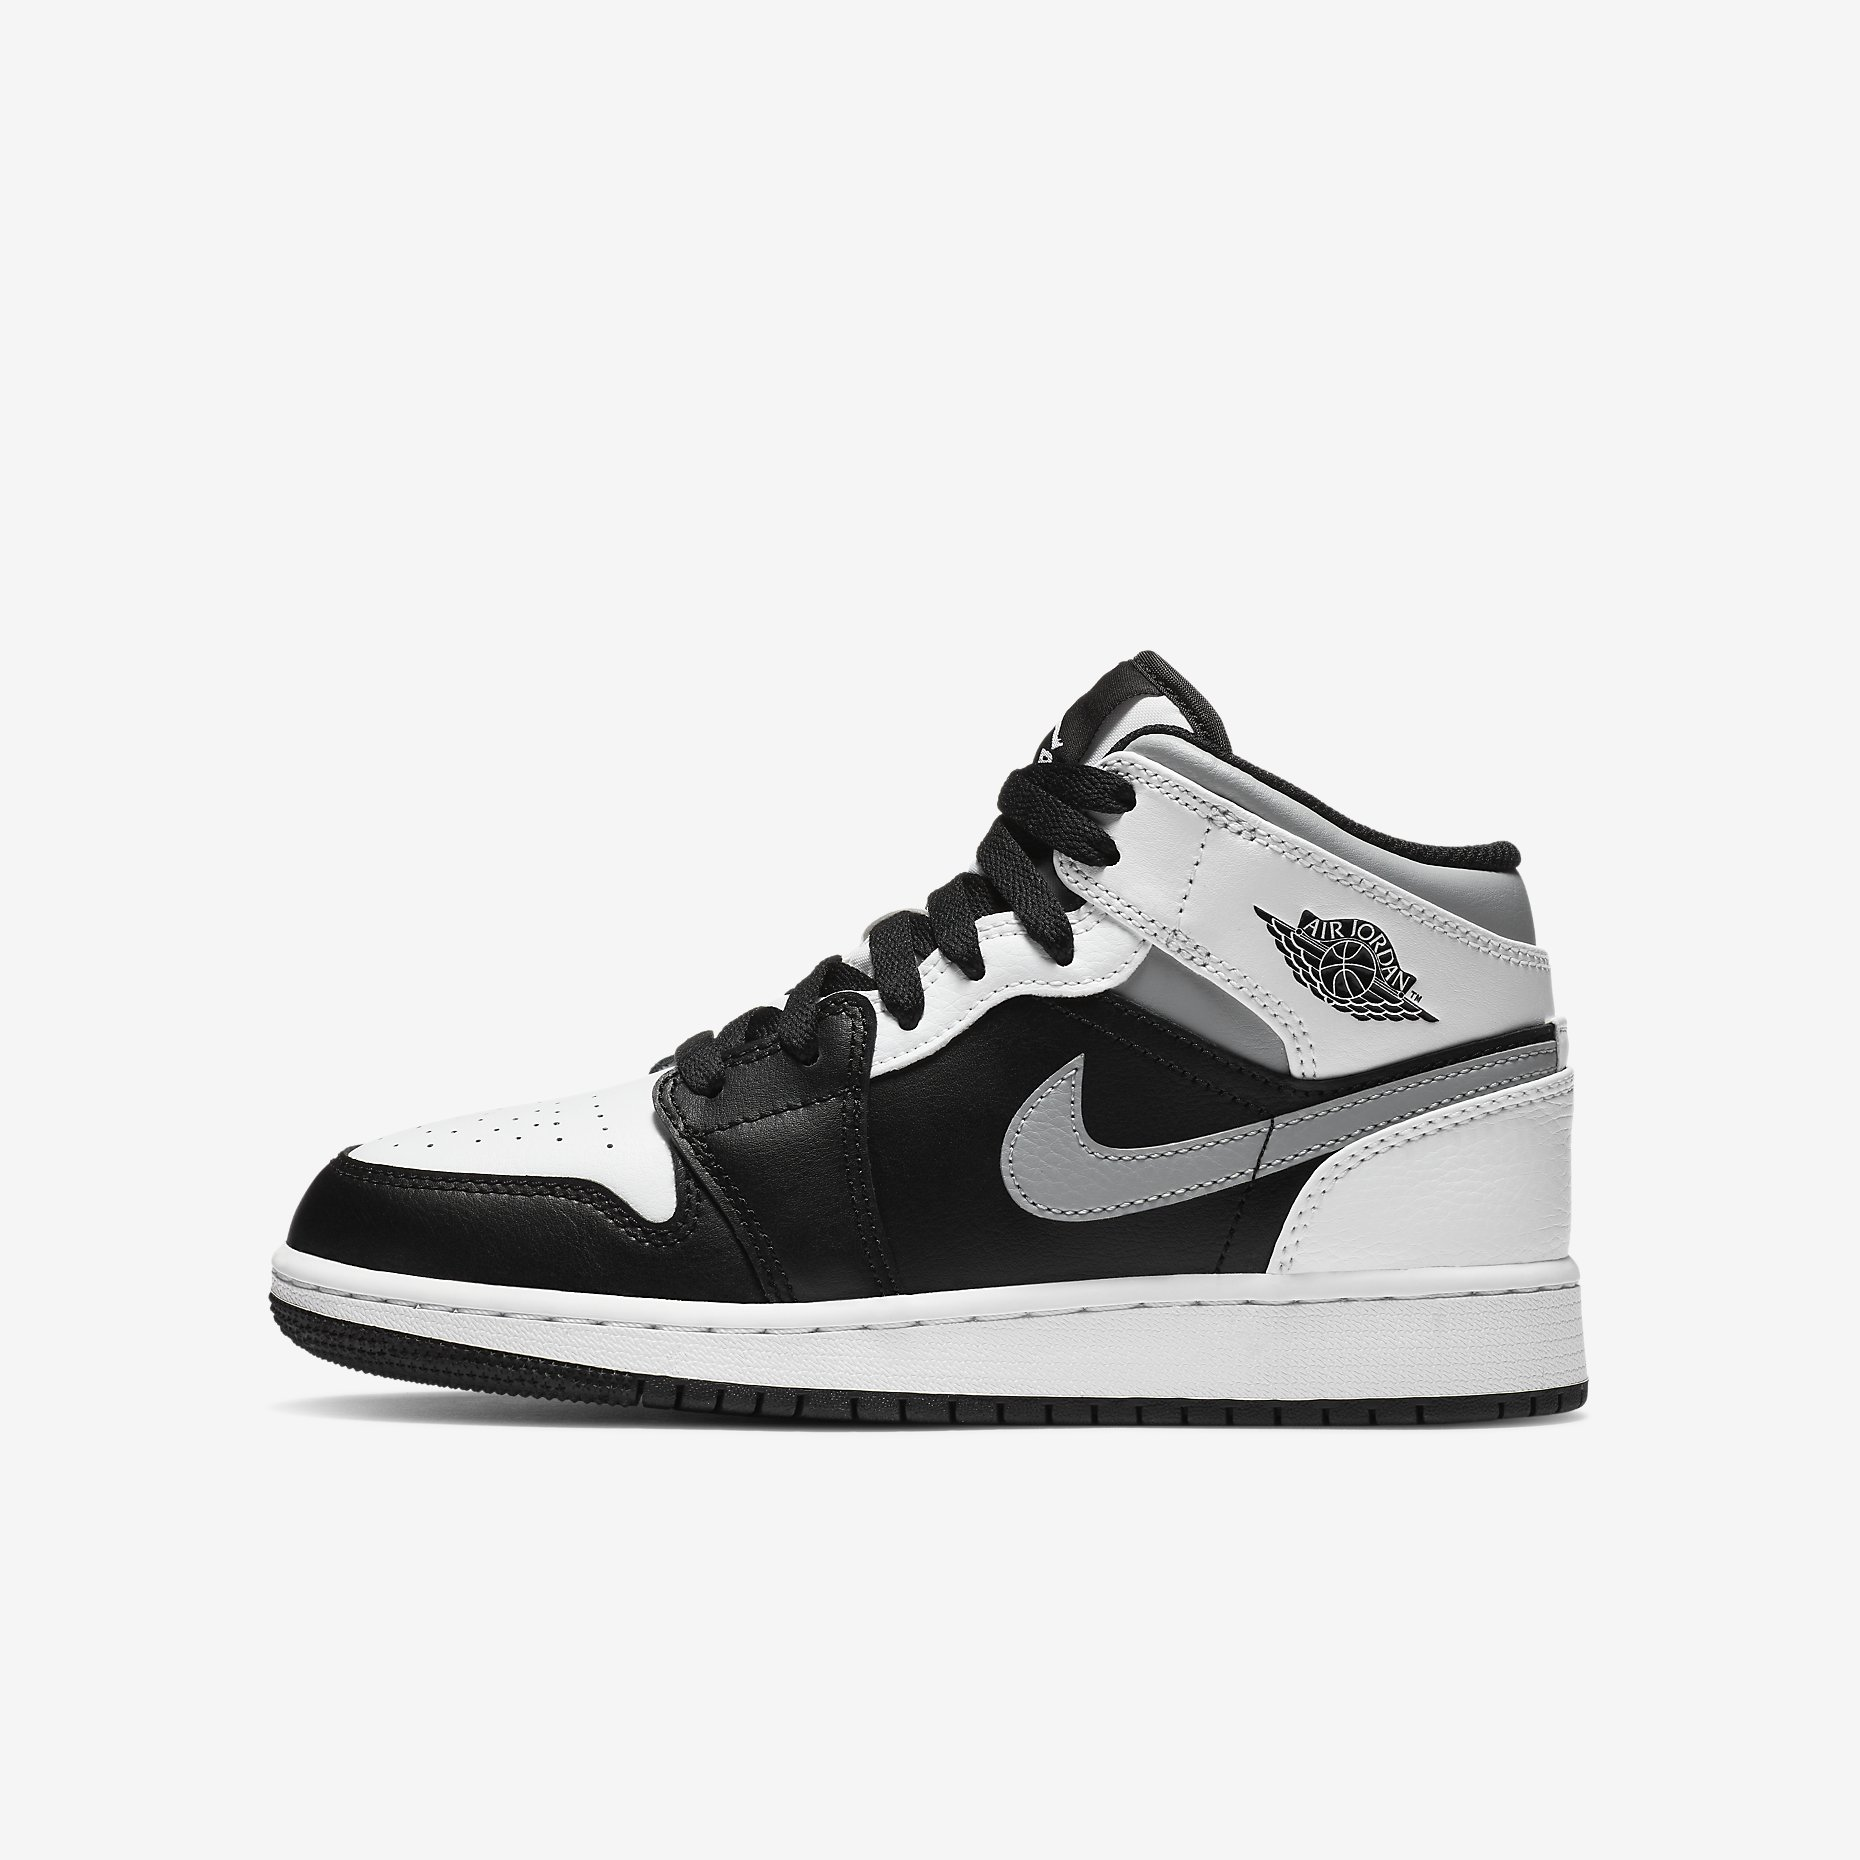 Air Jordan 1 Mid GS 'White Shadow'}